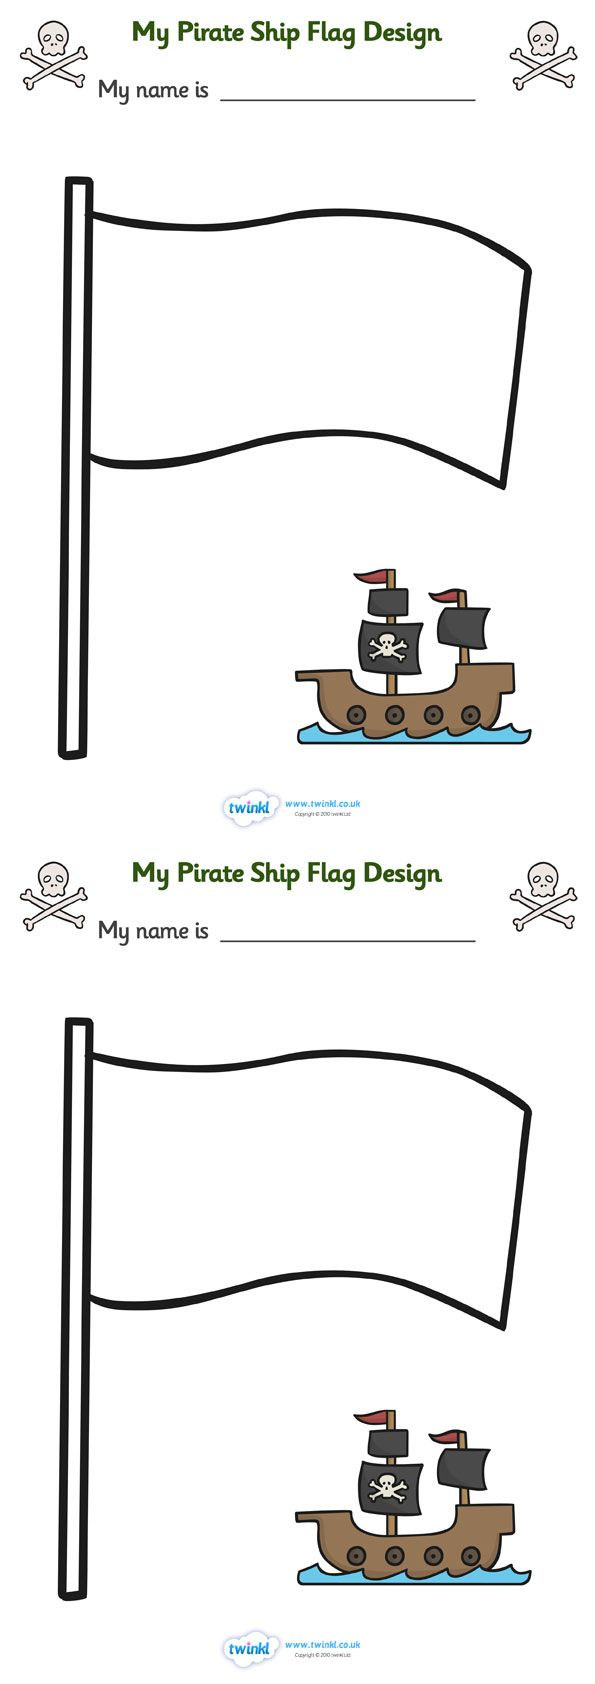 Twinkl Resources >> Design Your Own Ship Flag Worksheet >> Classroom ...